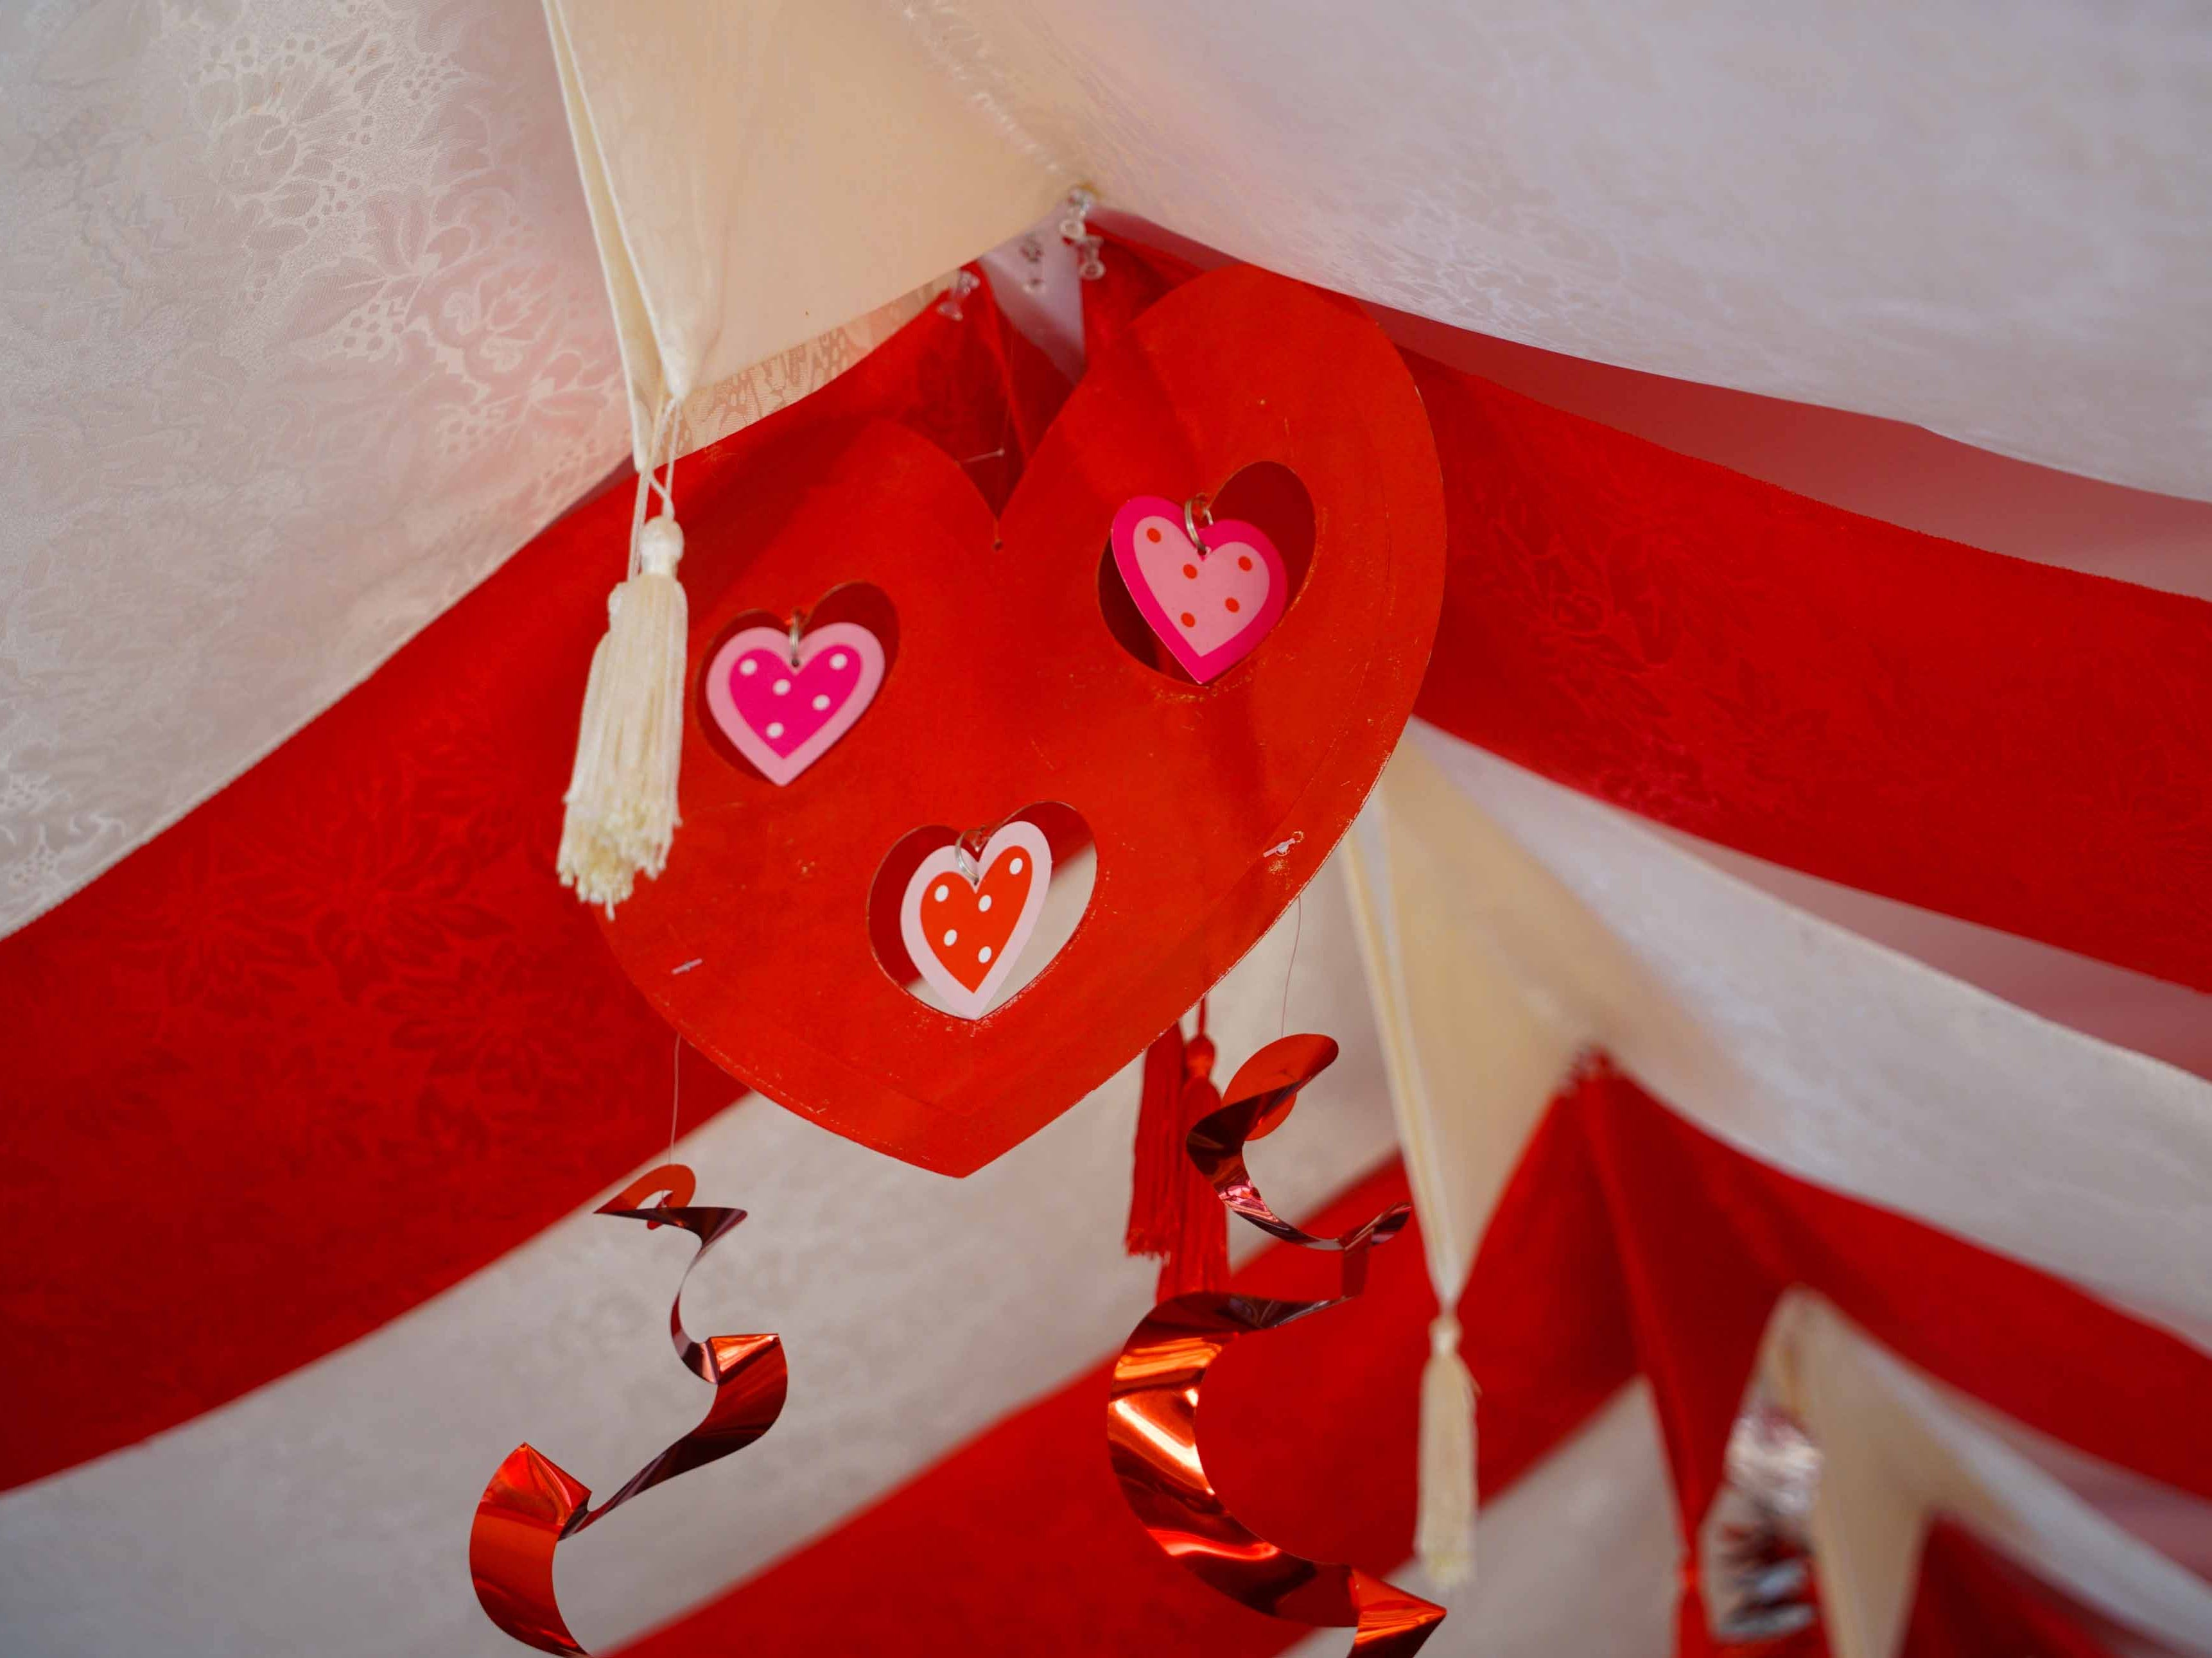 Heart shaped Valentine's Day decor hangs from the ceiling at Serendipity Restaurant.